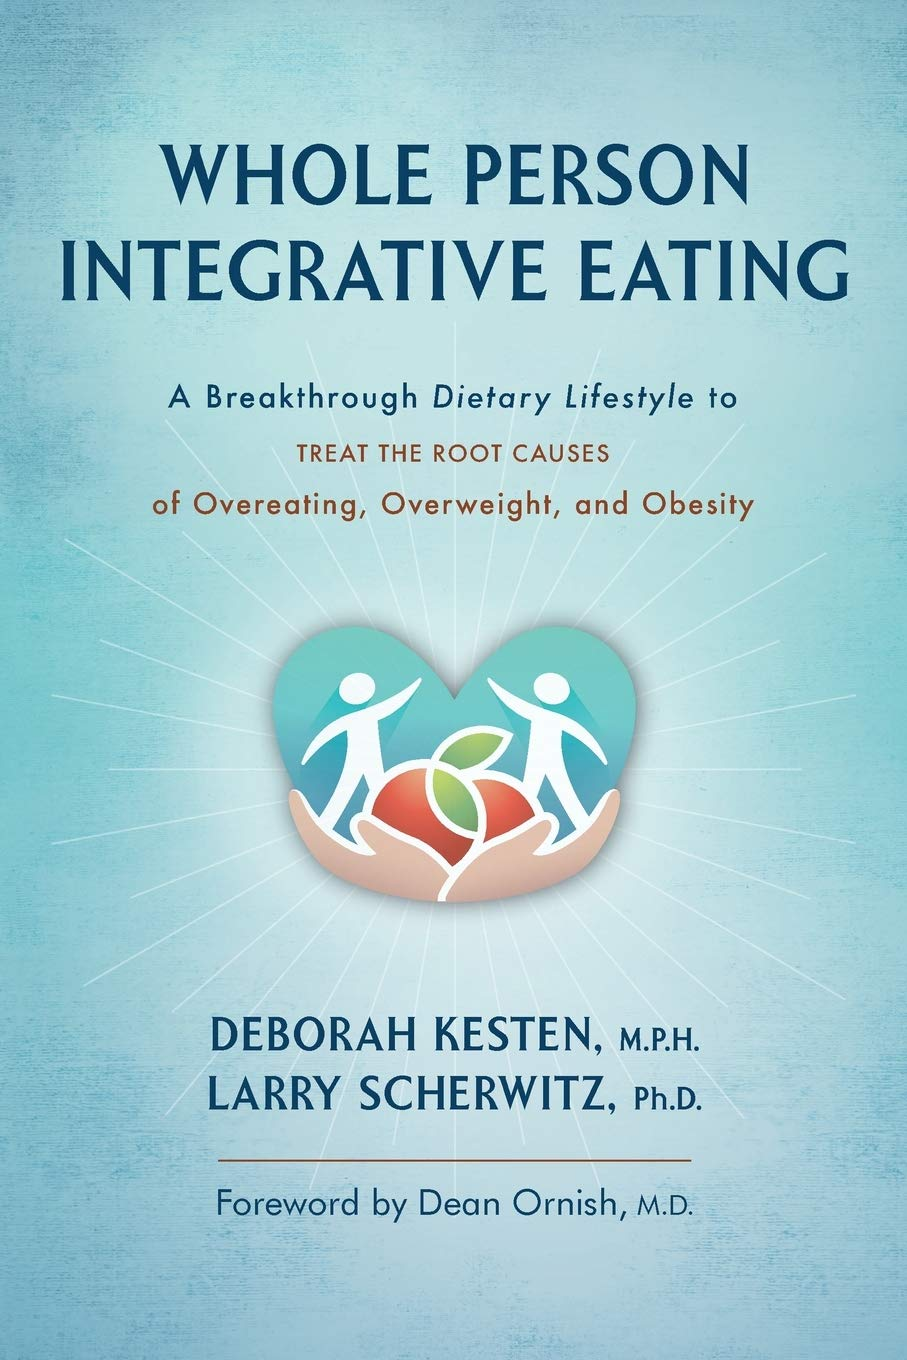 Whole Person Integrative Eating A Breakthrough Dietary Lifestyle To Treat The Root Causes Of Overeating Overweight And Obesity Kesten Deborah Scherwitz Larry Ornish Dean 9781887043540 Amazon Com Books